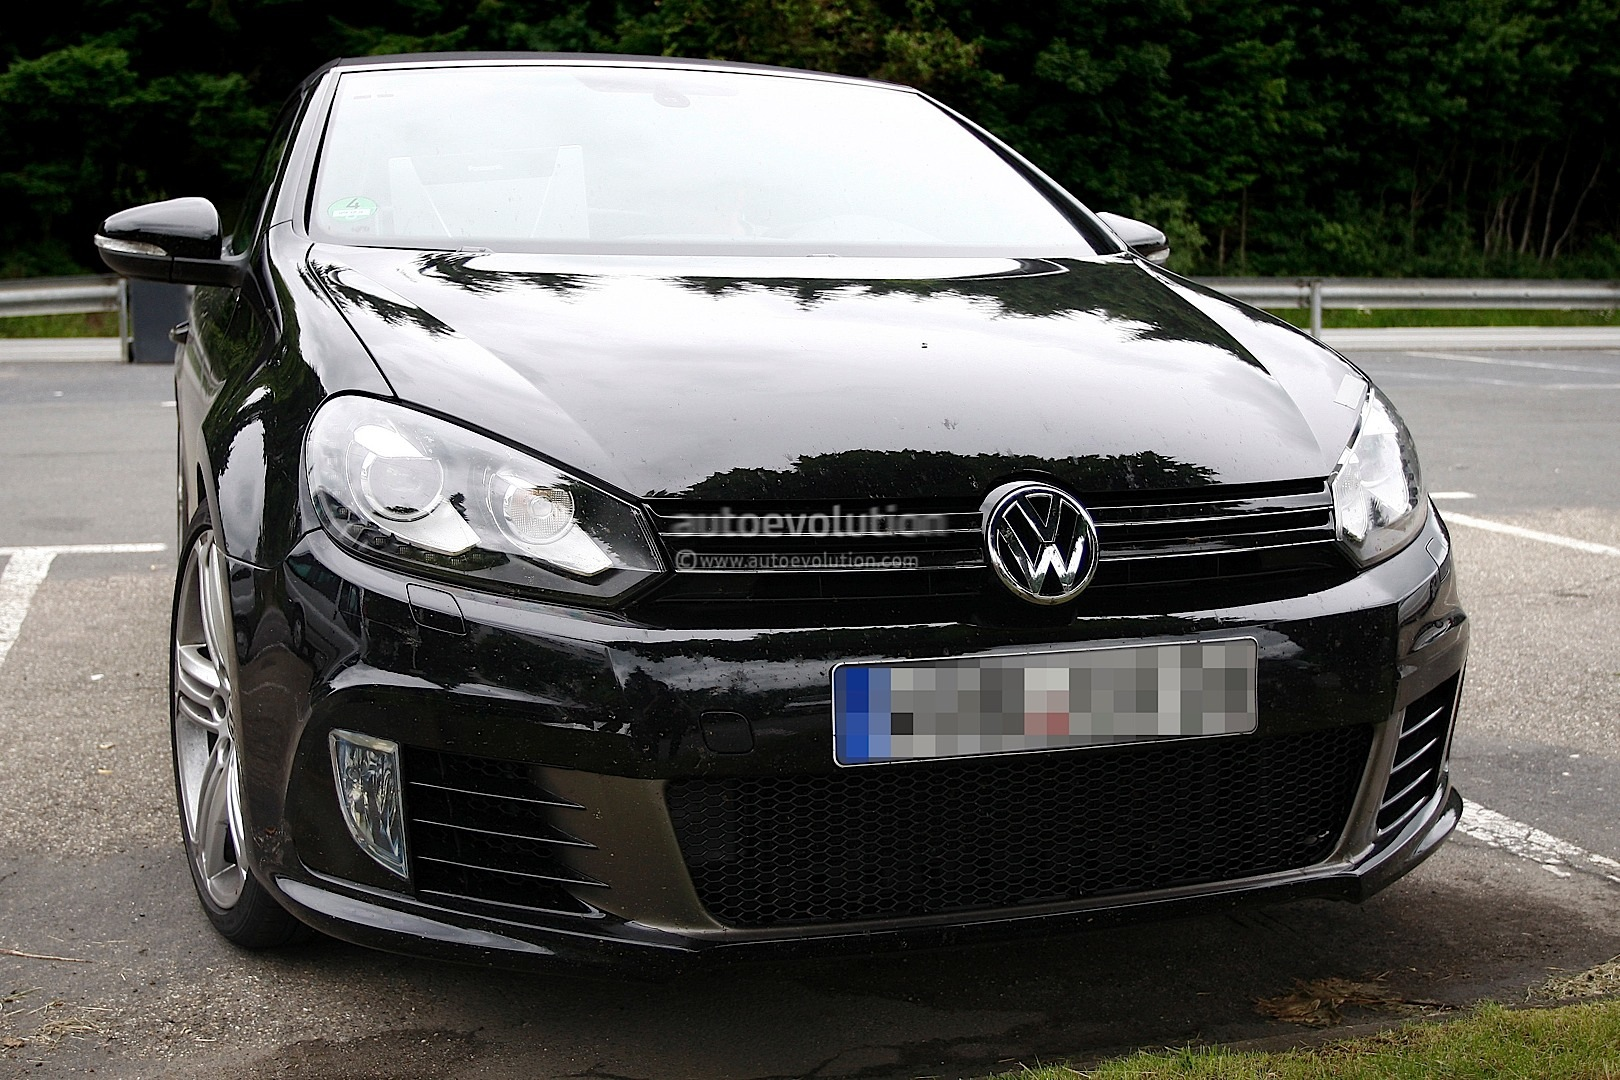 2019 Volkswagen Golf R Cabriolet Car Photos Catalog 2019